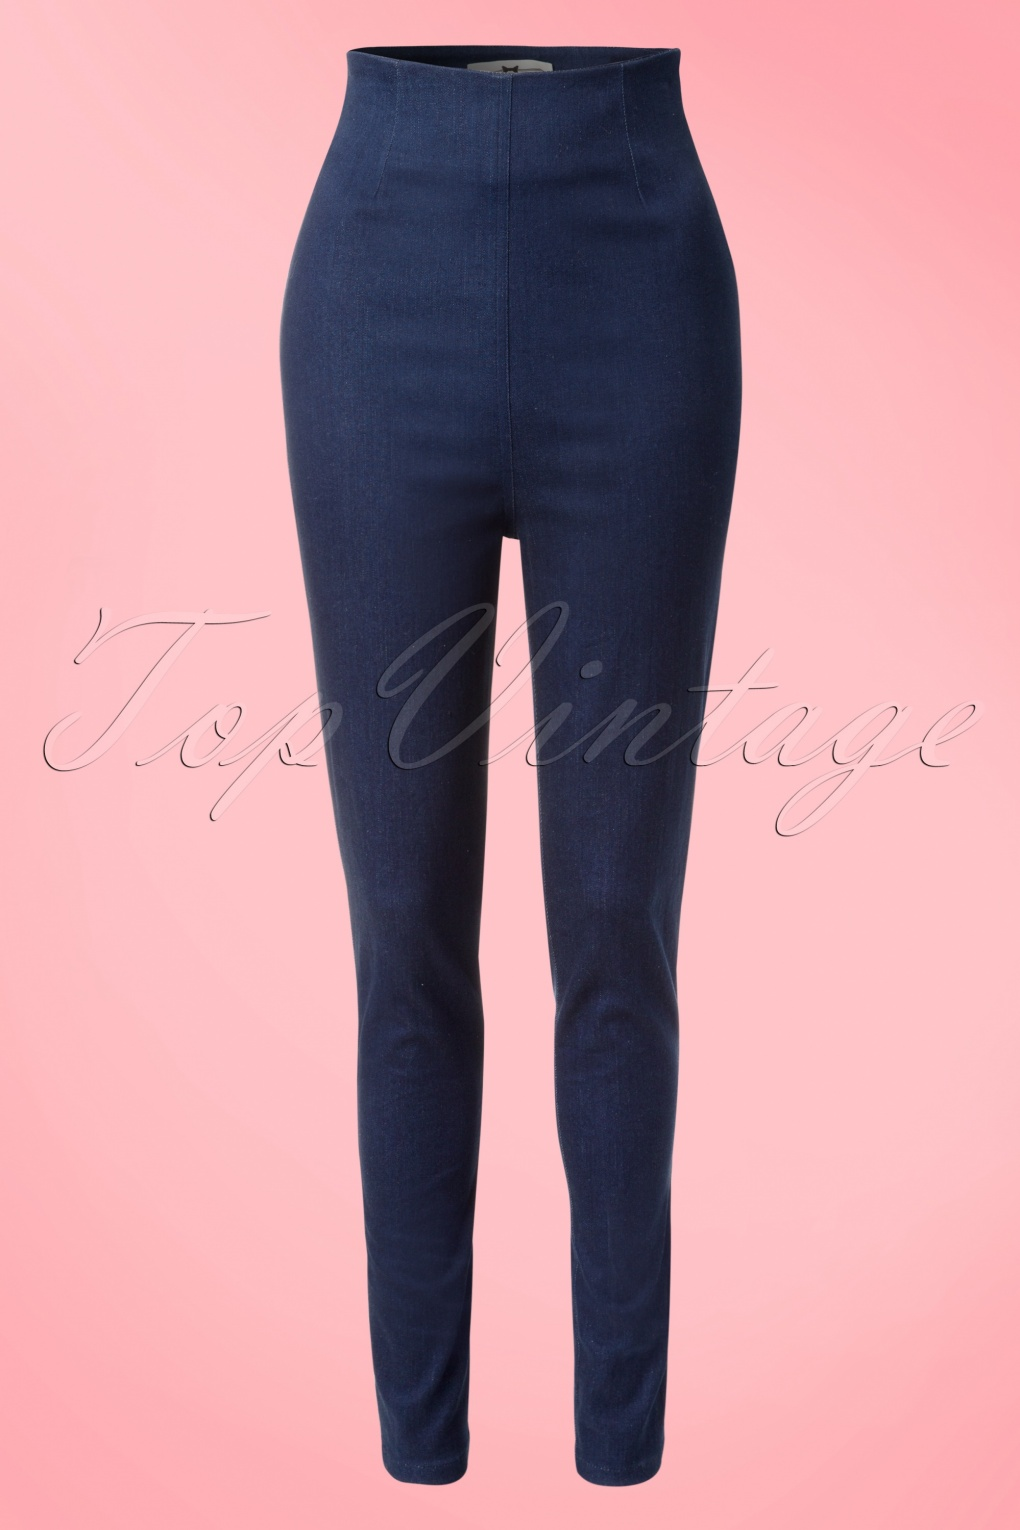 1950s Style Pants | Pinup Capri | High Waist Jeans 50s Kirsty Denim Pants in Blue £57.03 AT vintagedancer.com